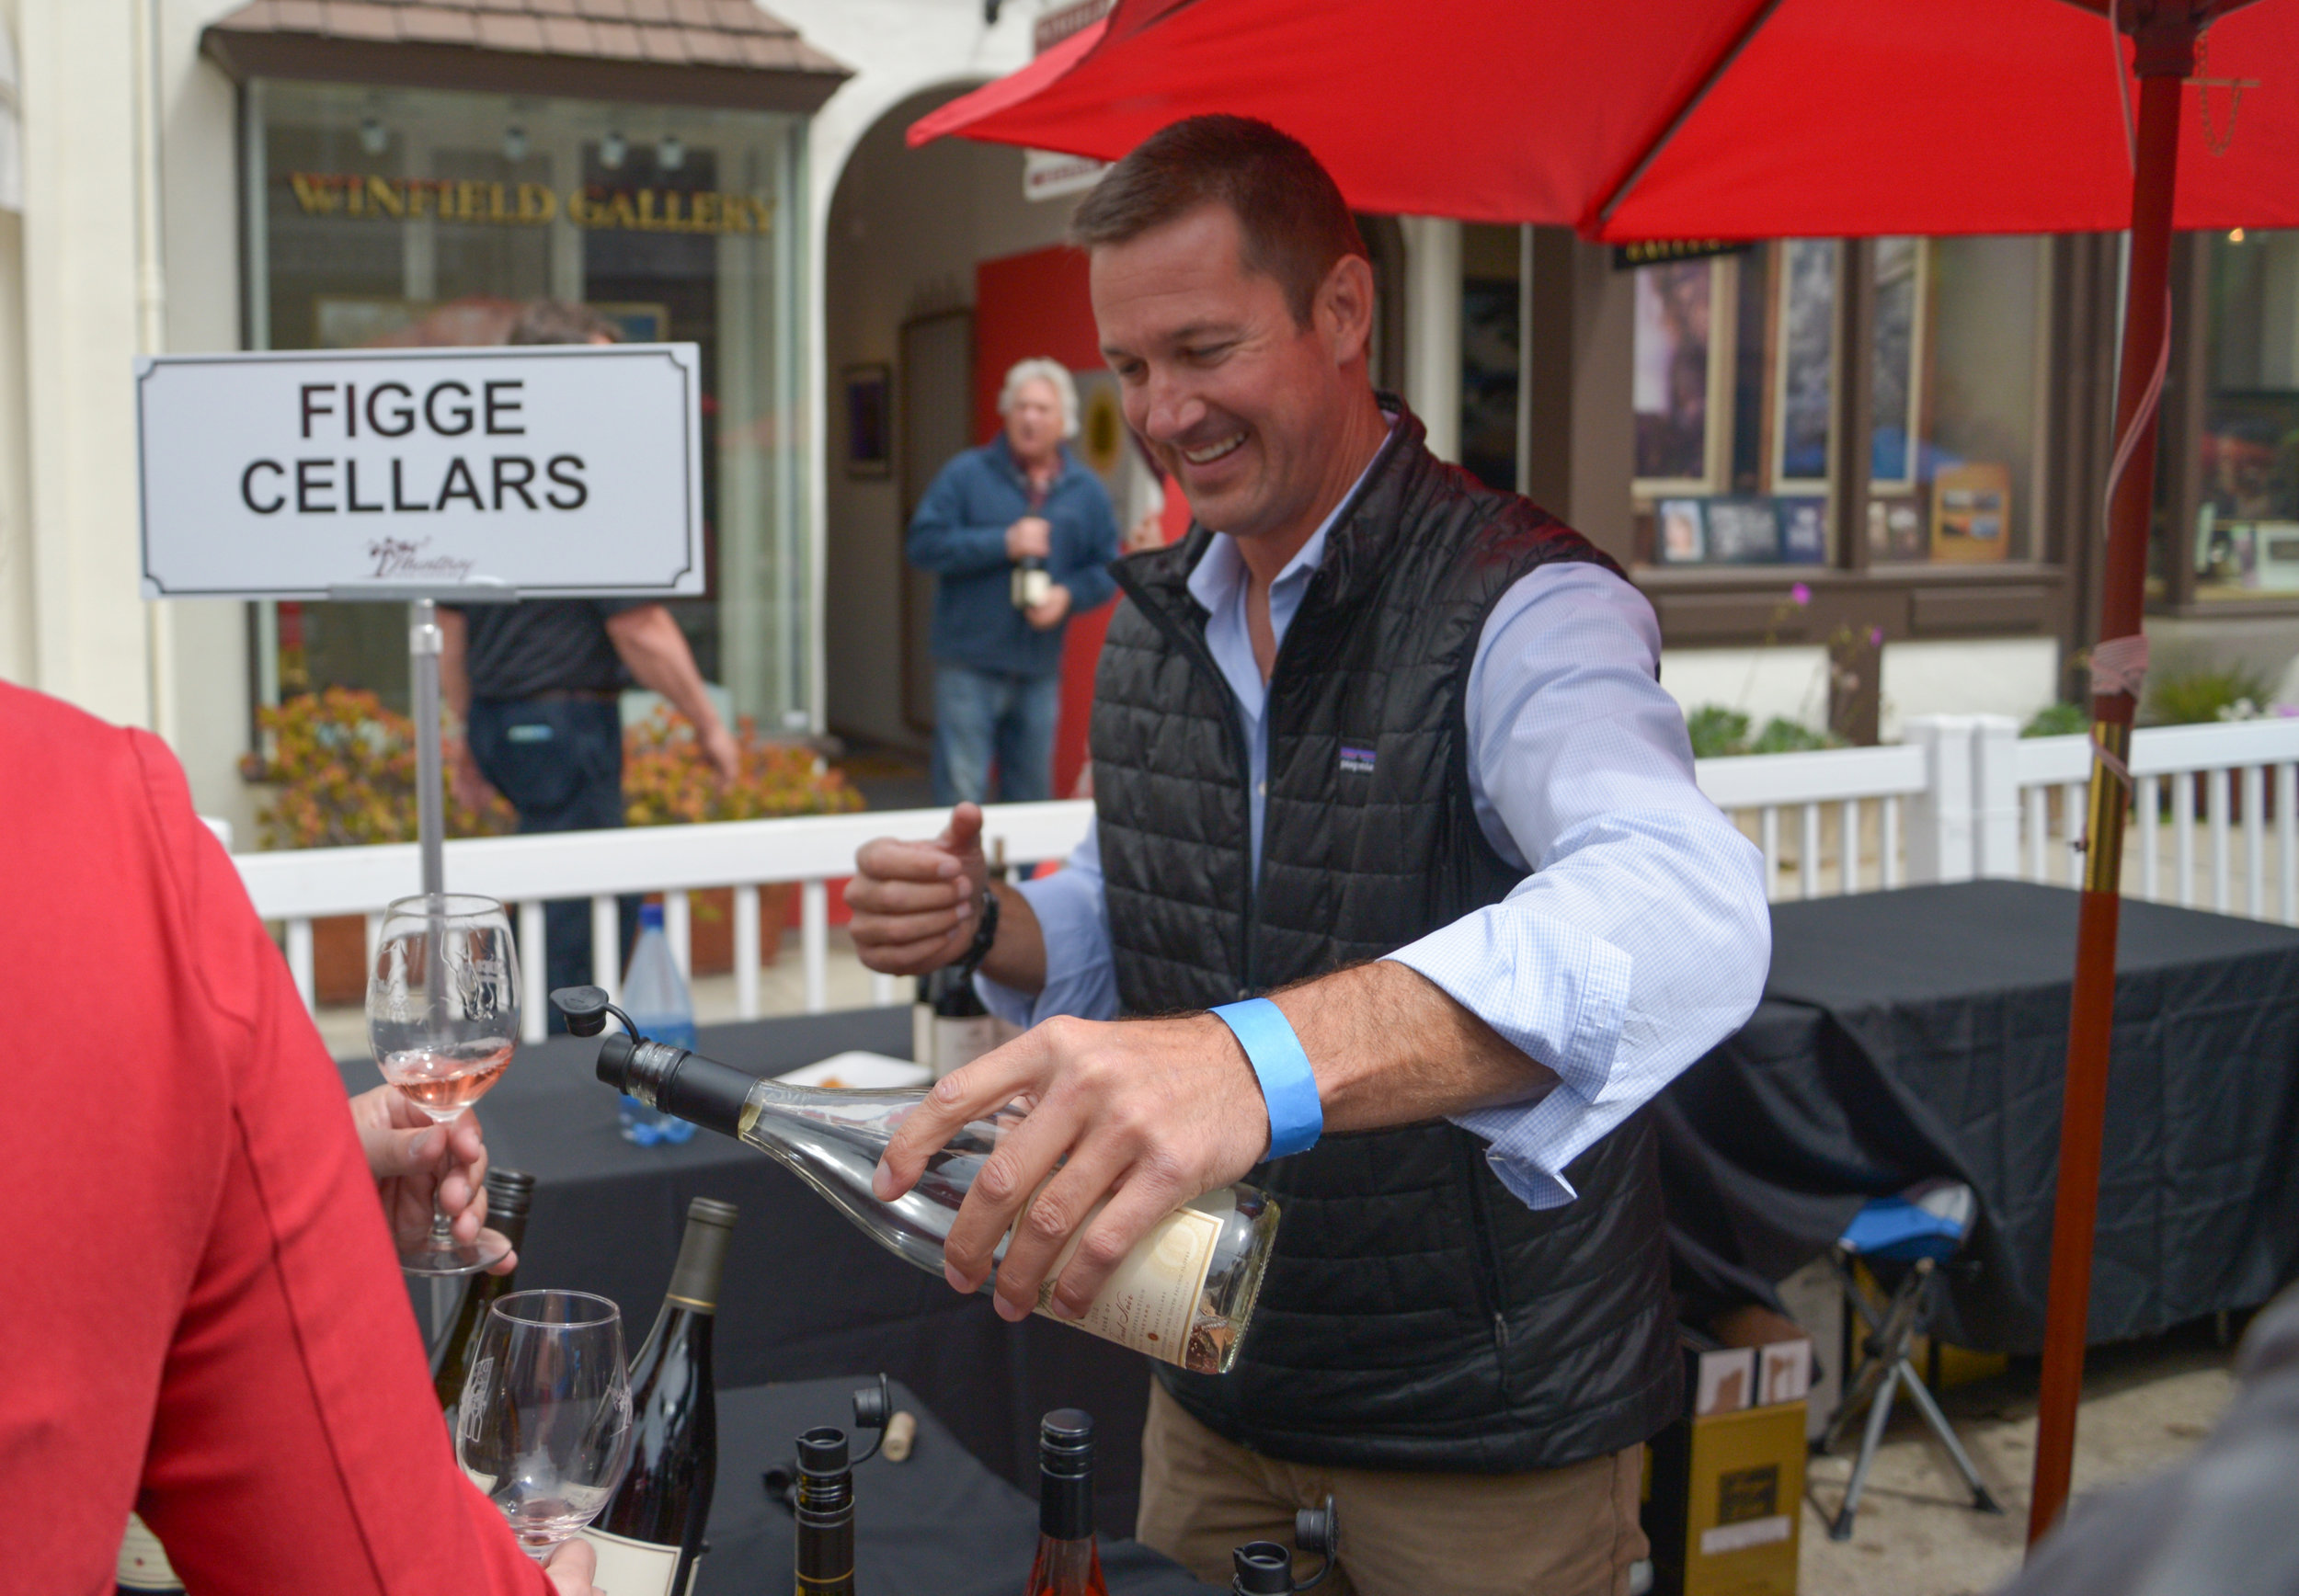 Peter Figge Wine Pour 3.jpg